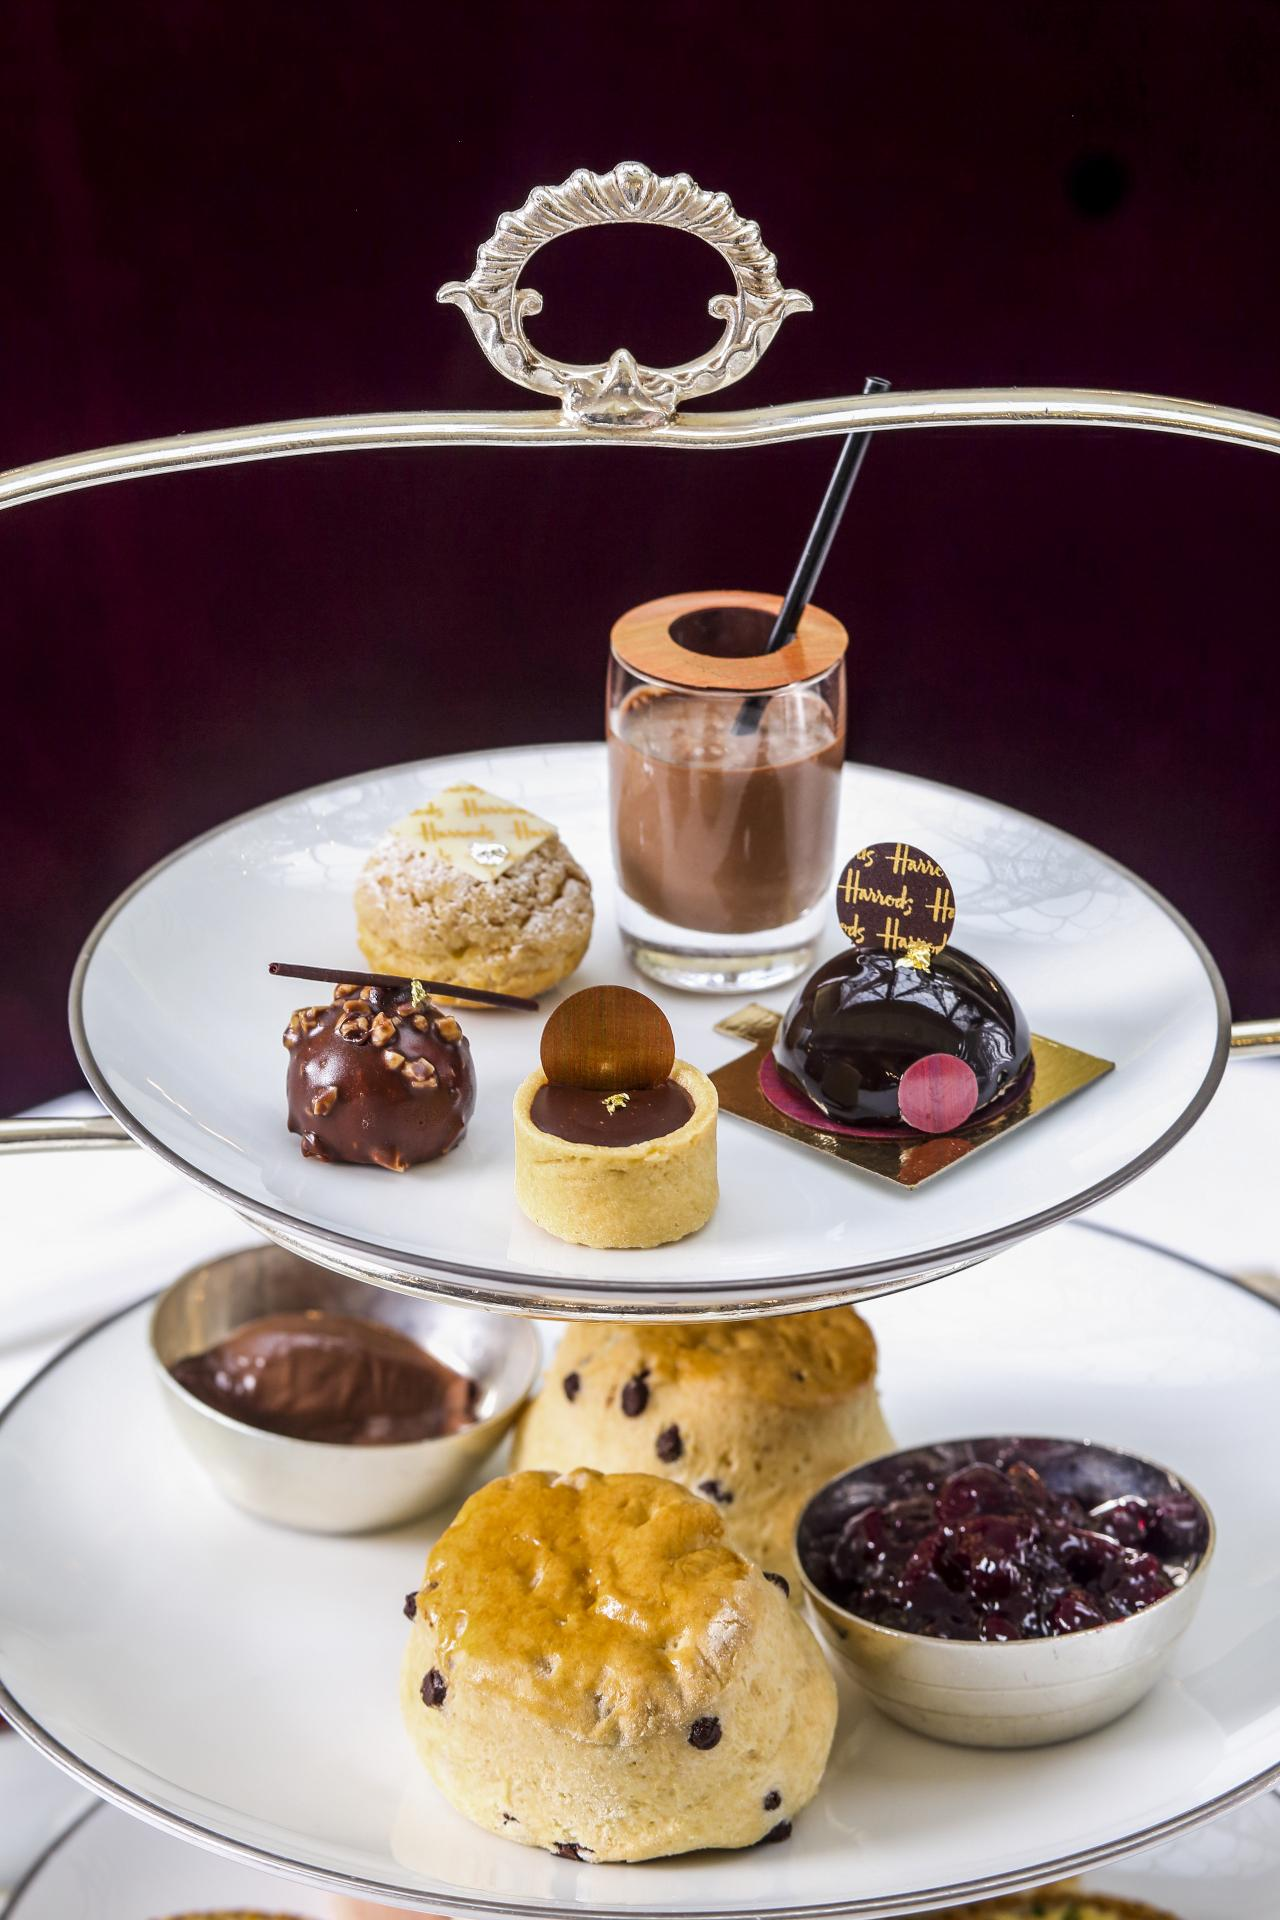 The Praline Ball And Malt Chocolate Drink From The Harrods